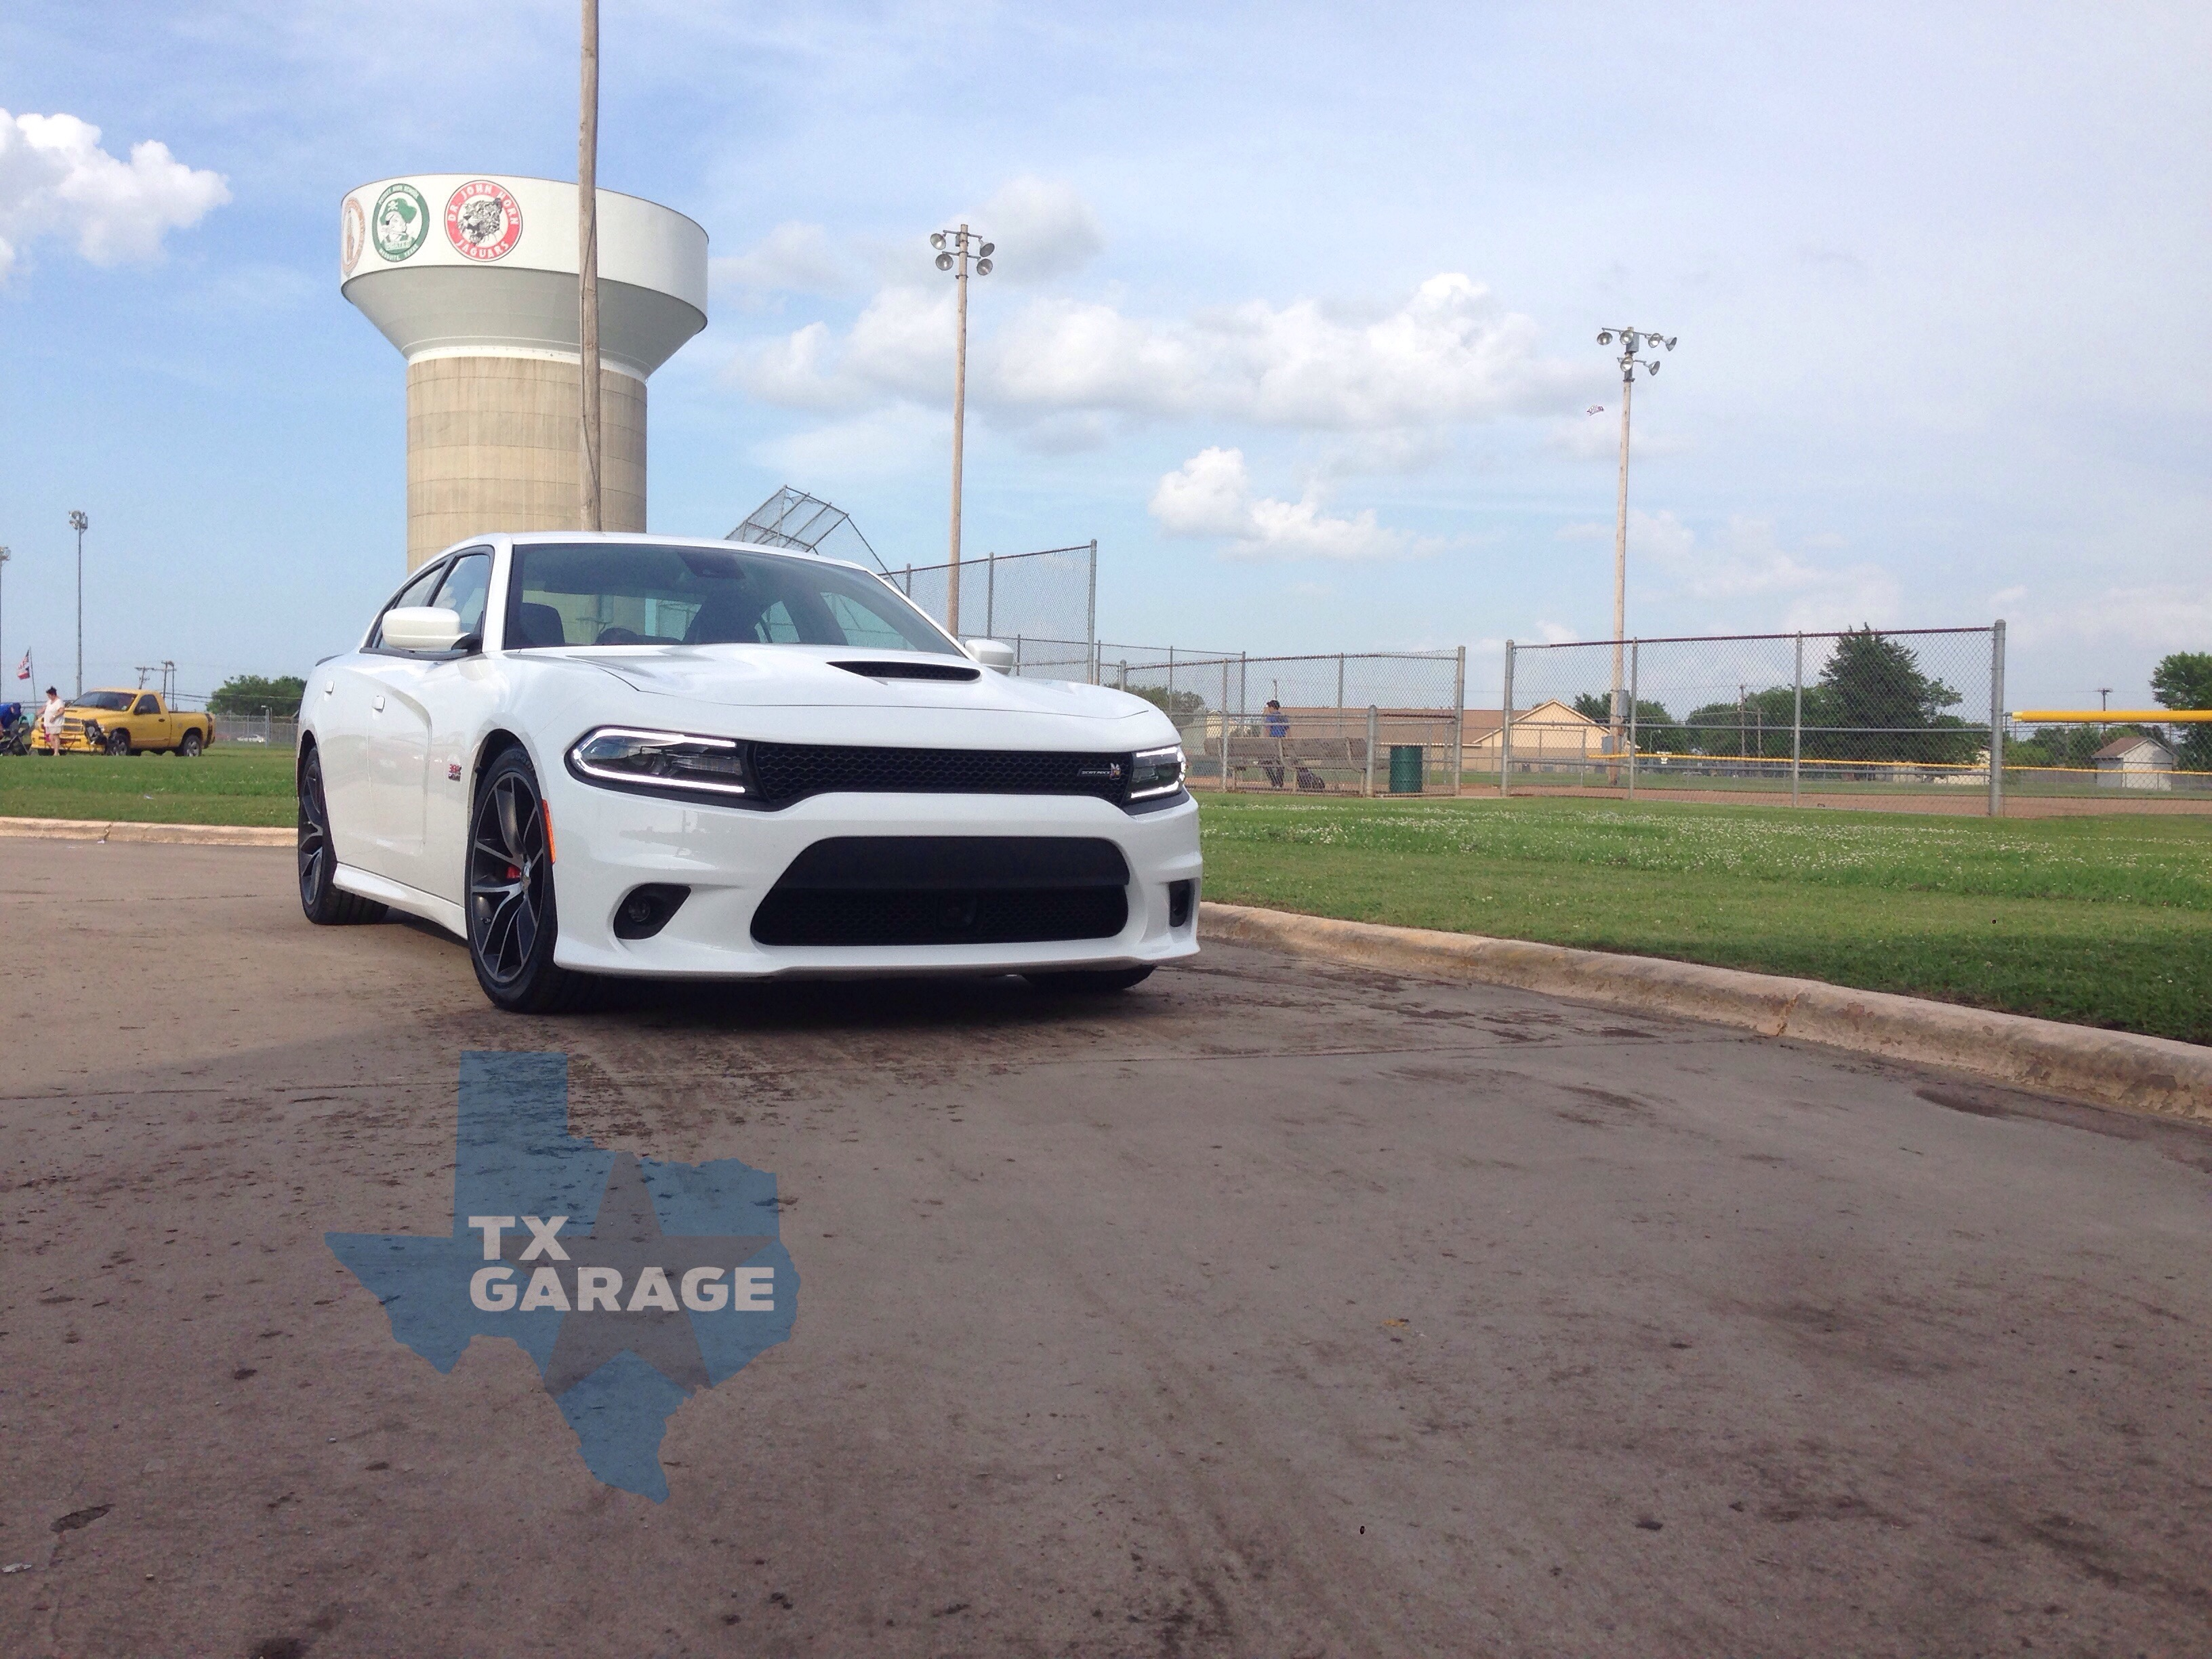 2015-Dodge-Charger-Scat-Pack-txGarage-0101